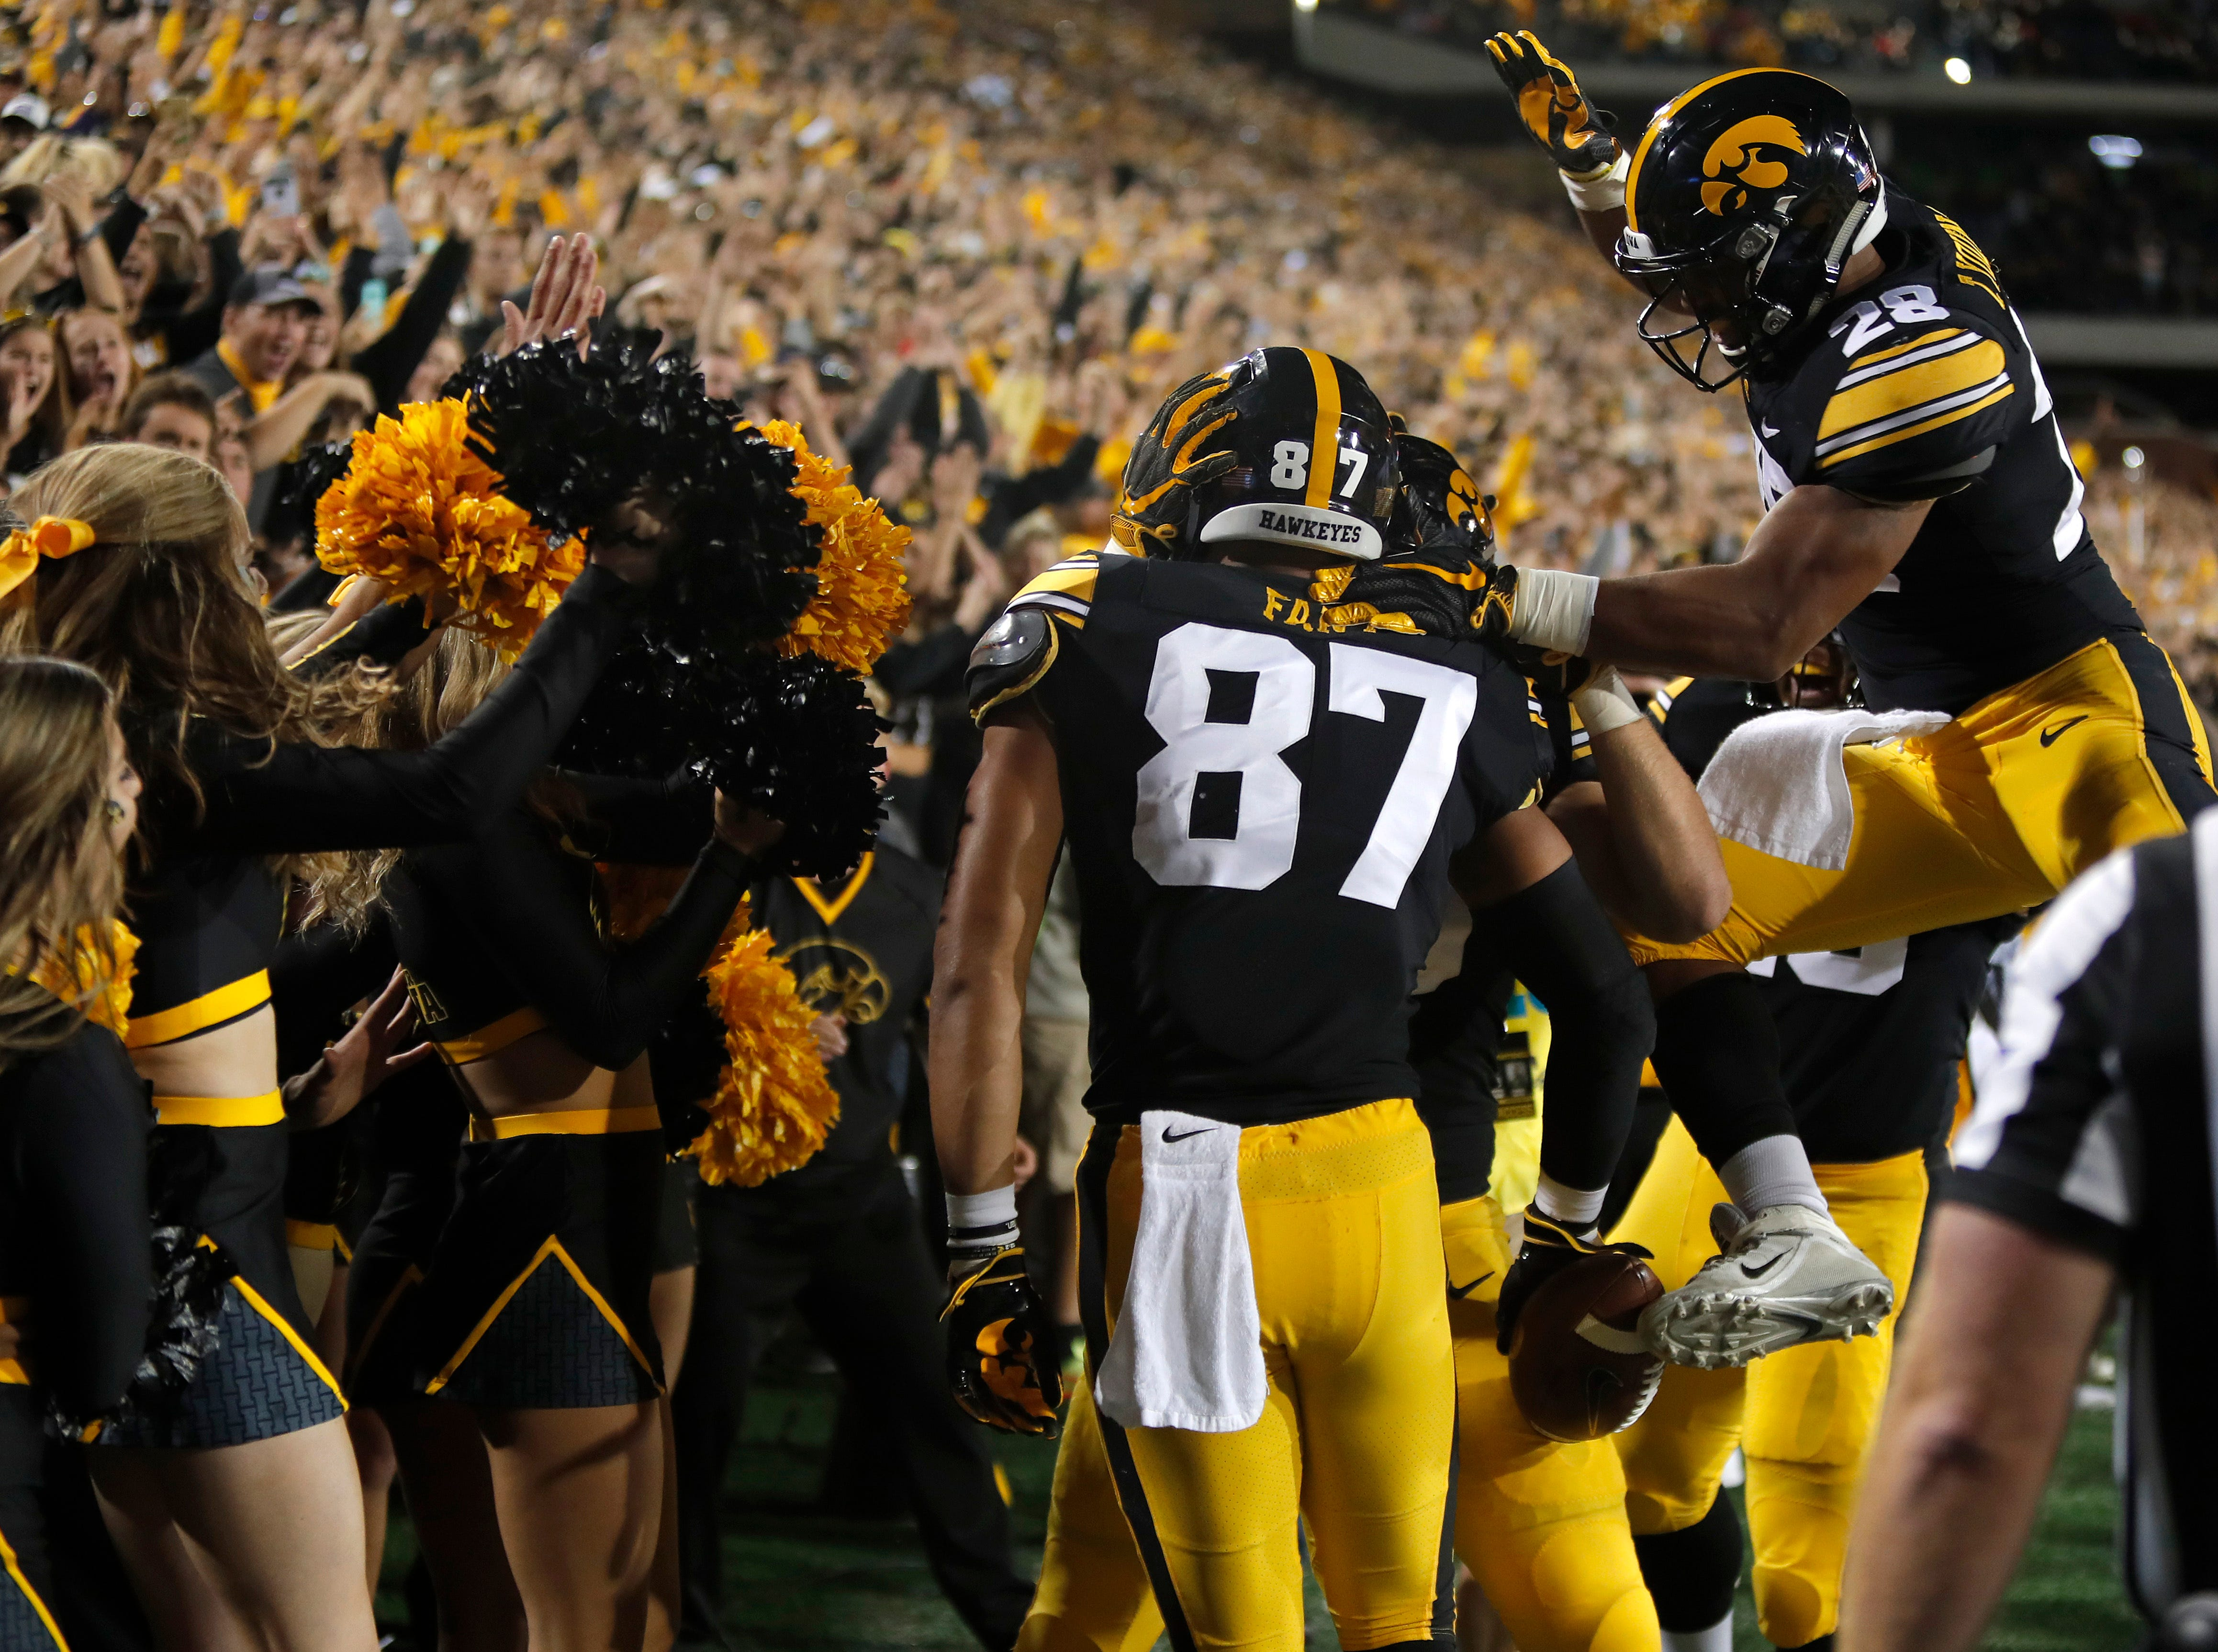 Iowa tight end Noah Fant celebrates his touchdown with Iowa running back Toren Young, right, during the second half of an NCAA college football game against Wisconsin, Saturday, Sept. 22, 2018, in Iowa City. (AP Photo/Matthew Putney)